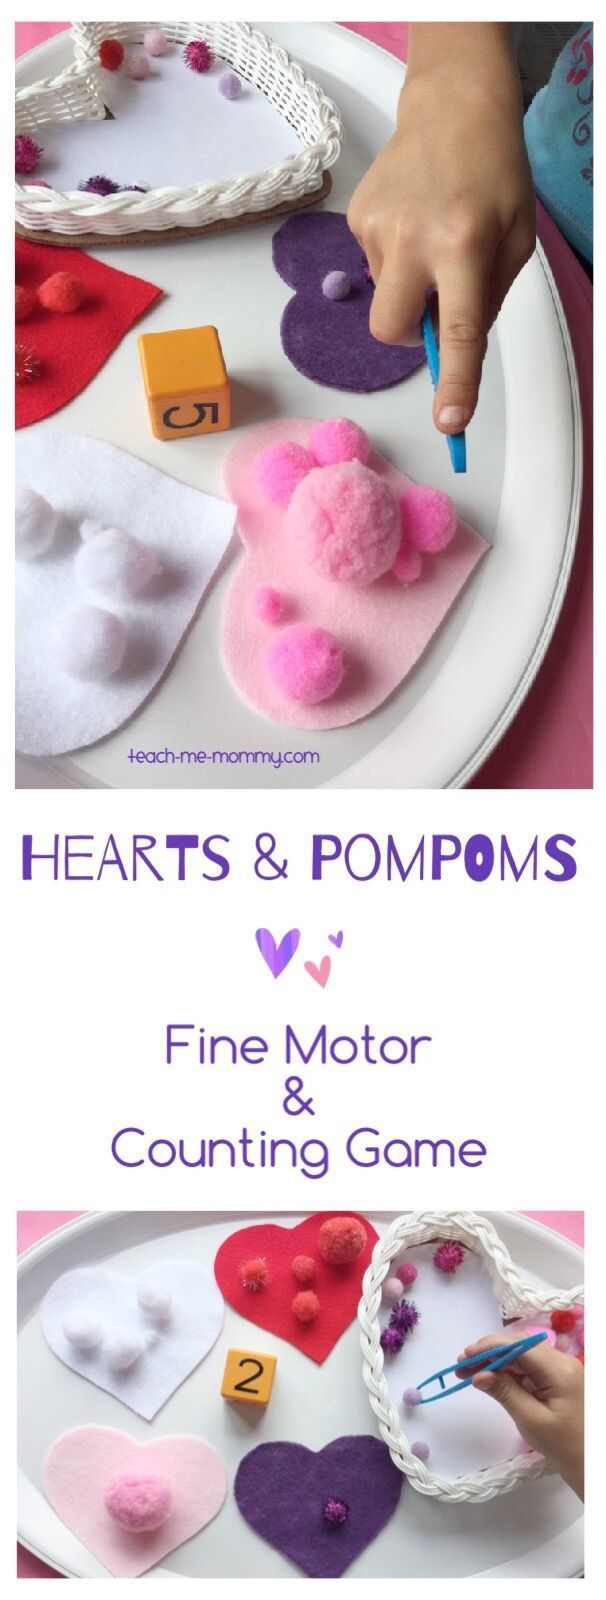 Hearts & Pompoms Counting Game Make a fun heart & pompoms fine motor and counting game that kids of all ages can enjoy!